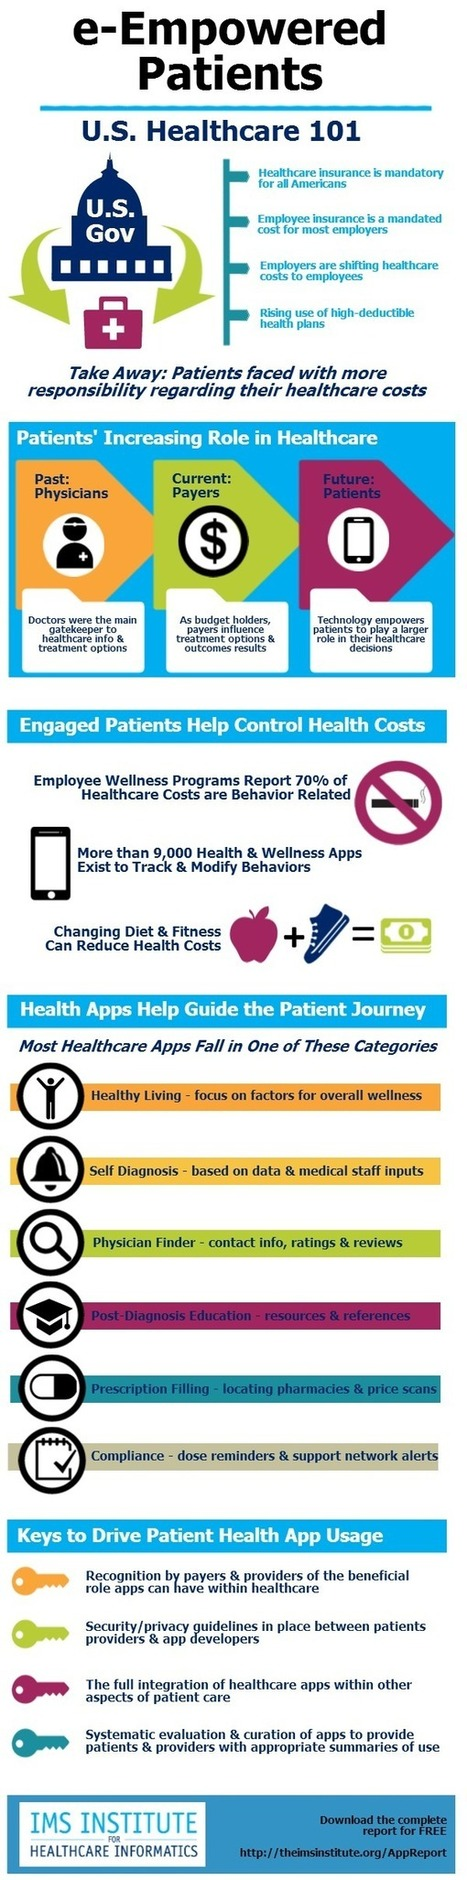 Ow.ly - image uploaded by @IMSHealth | Insurance Companies: Telehealth and Mobile Apps | Scoop.it